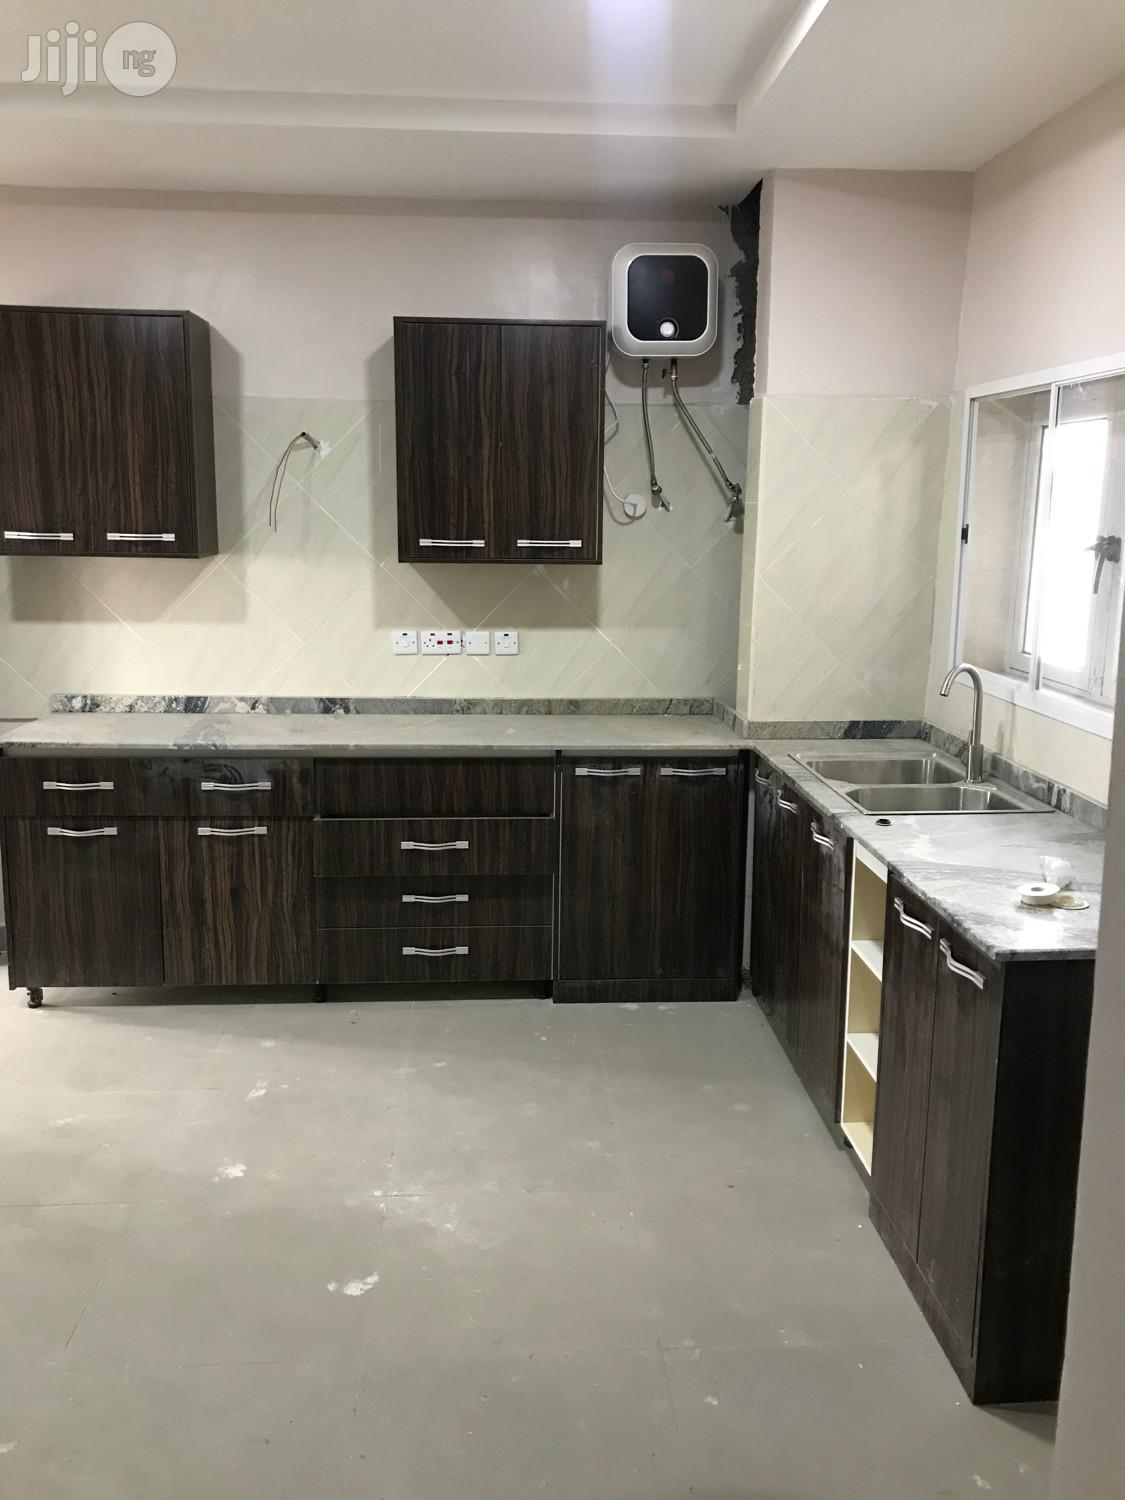 3 Bedrooms Flat Close To Turkish Hospital Idu | Houses & Apartments For Sale for sale in Wuse 2, Abuja (FCT) State, Nigeria